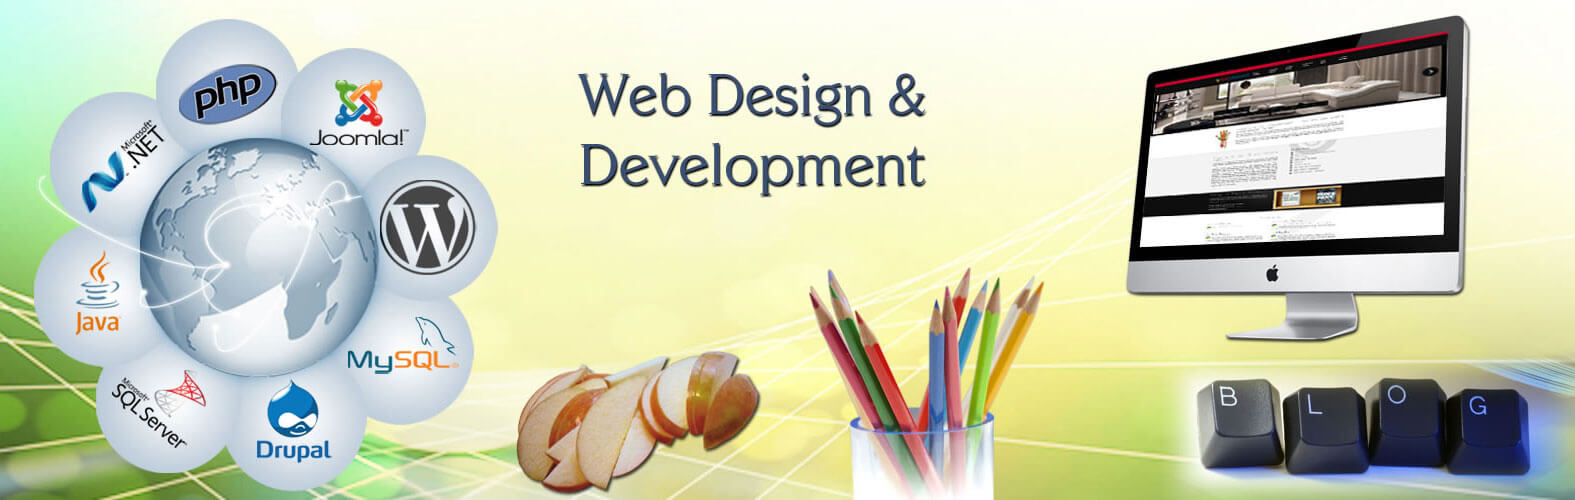 Web Design & Development in Sri Lanka